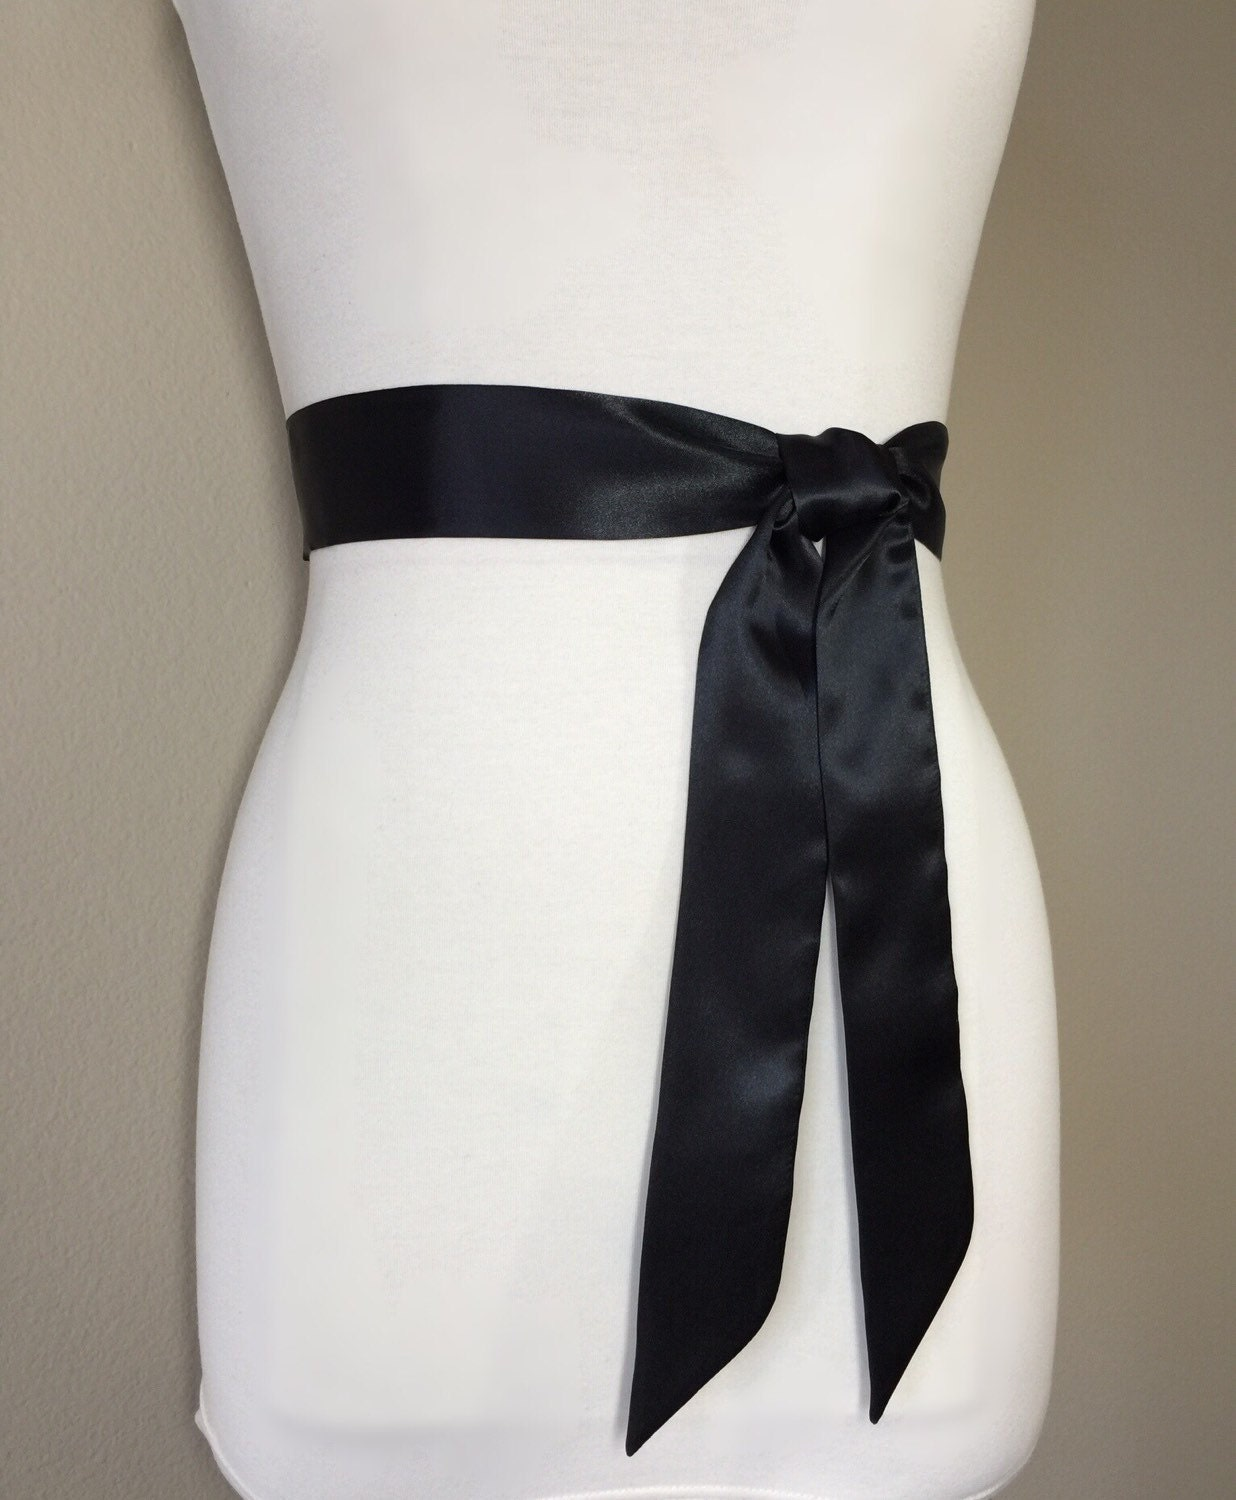 Narrow Black Sash Black Satin Sash Black Sash Belt